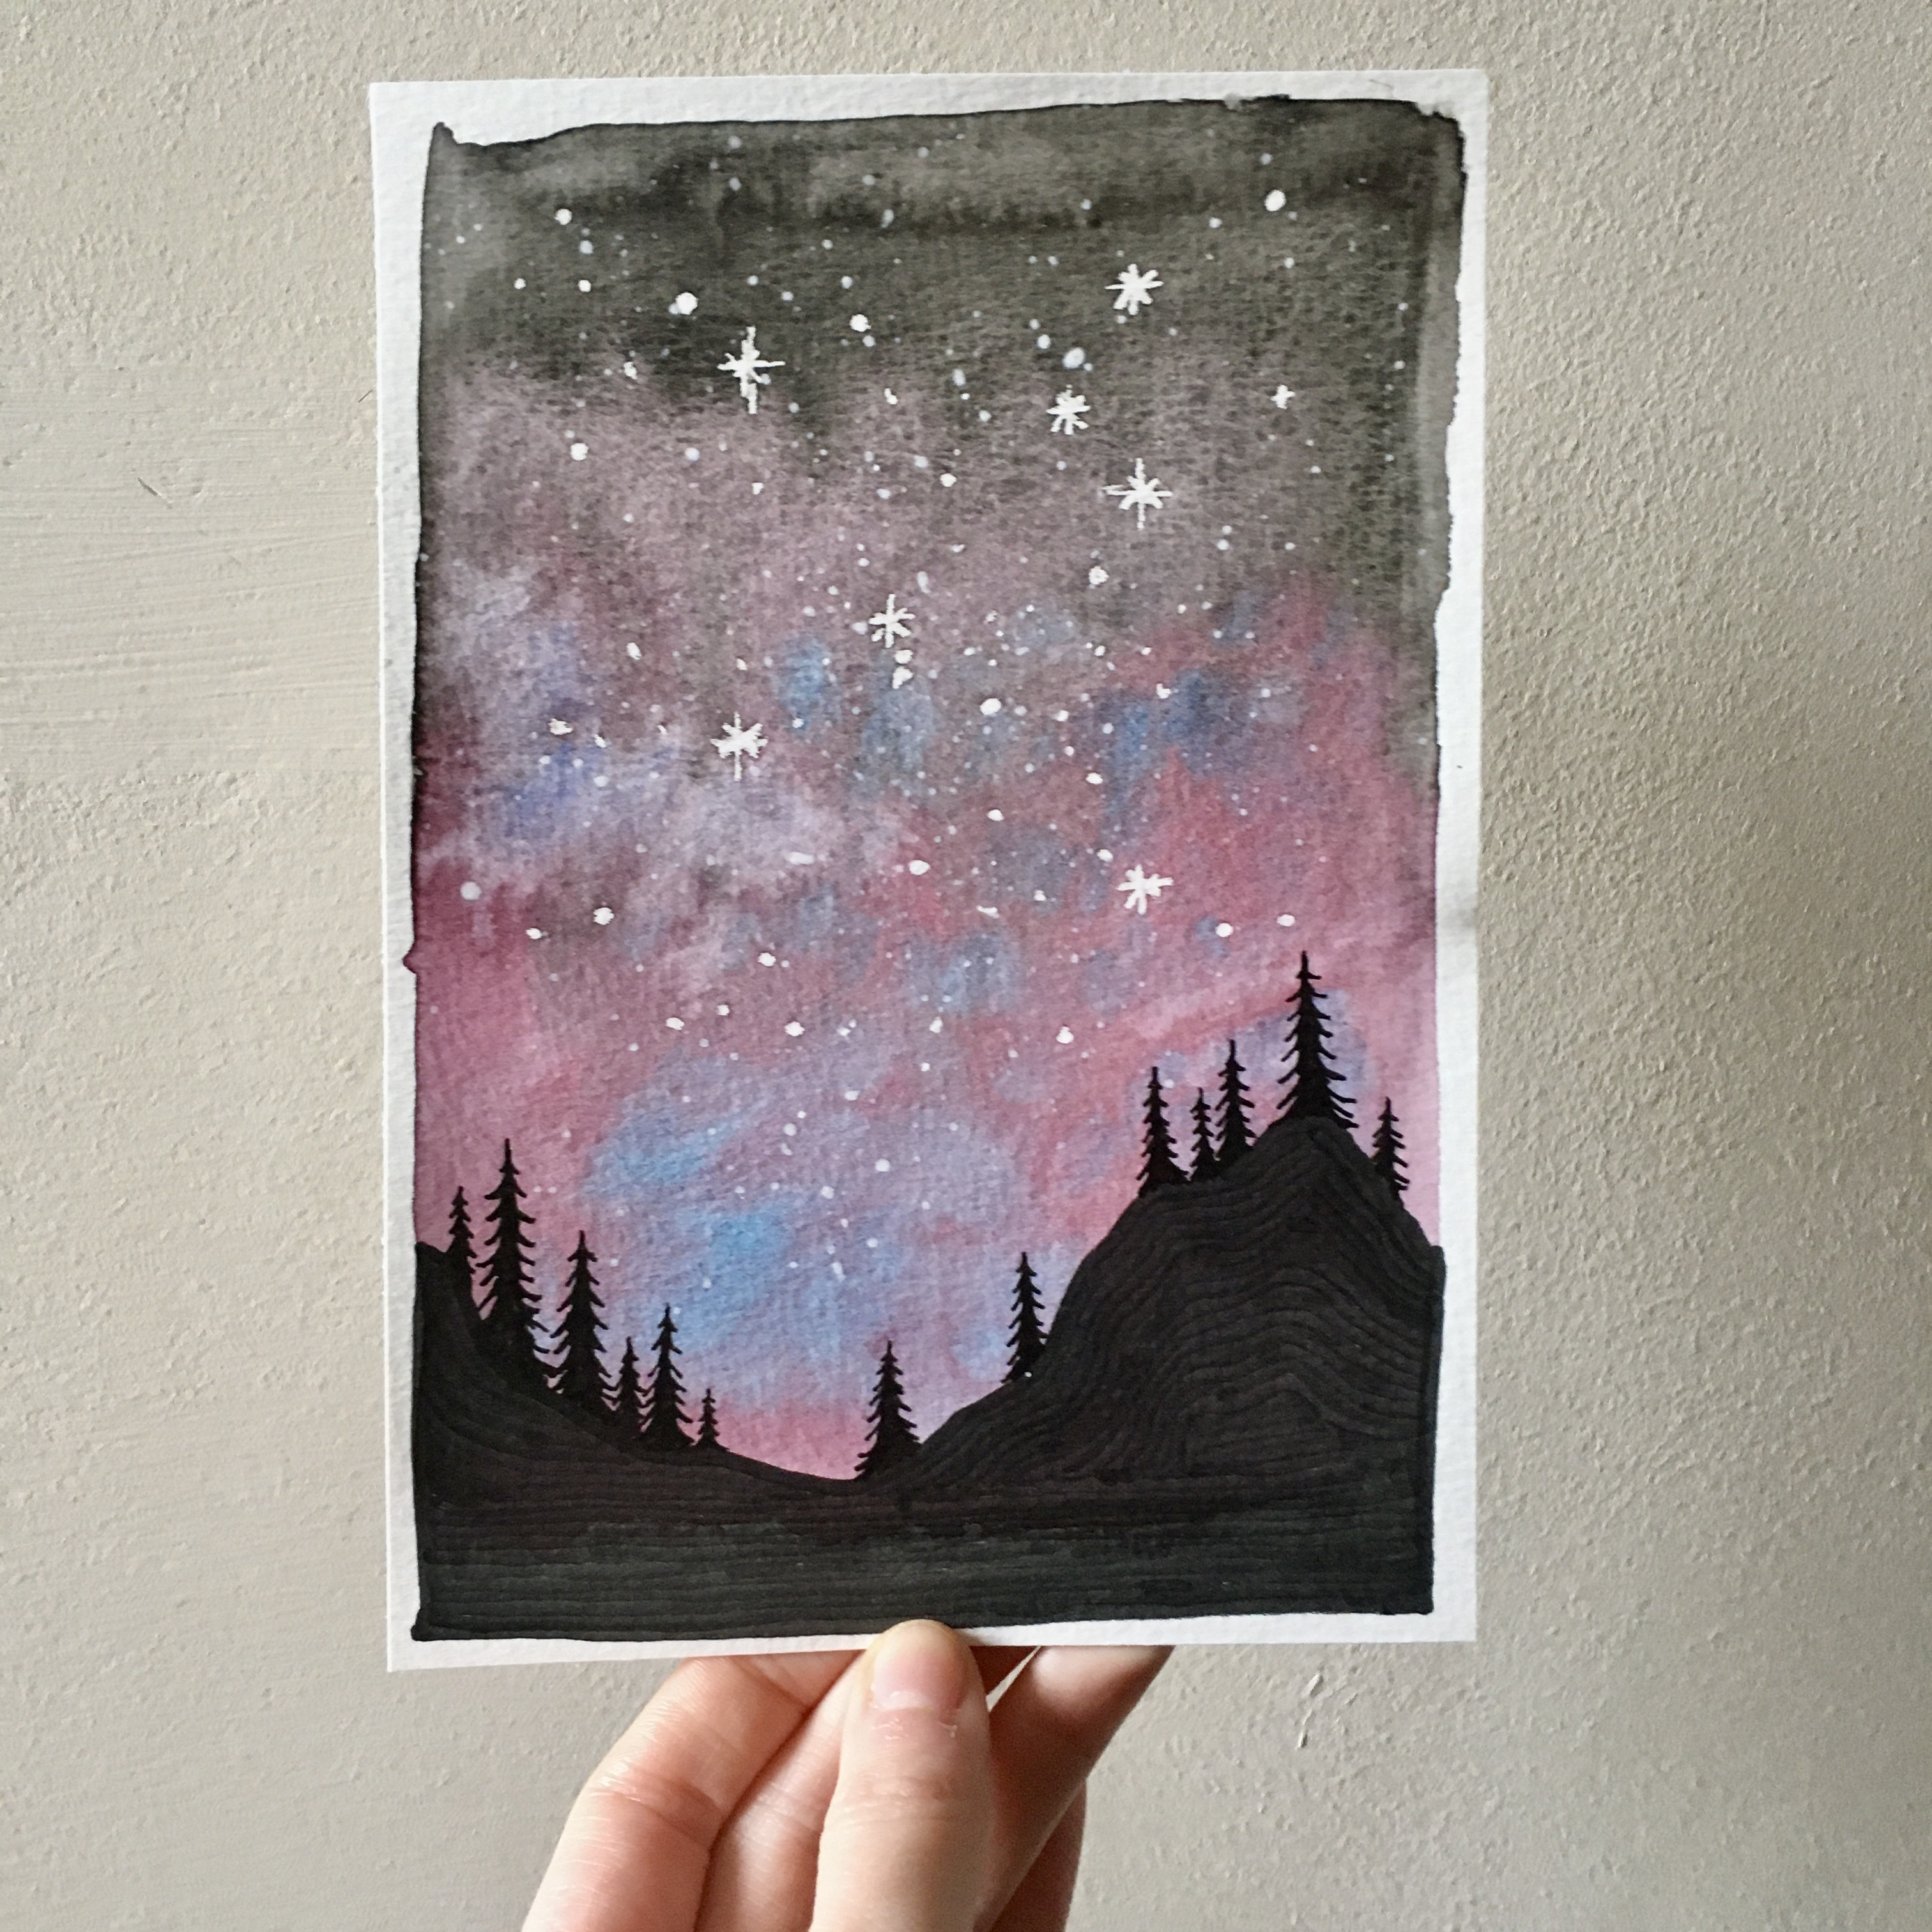 Purple Starry Sky over the Forest.